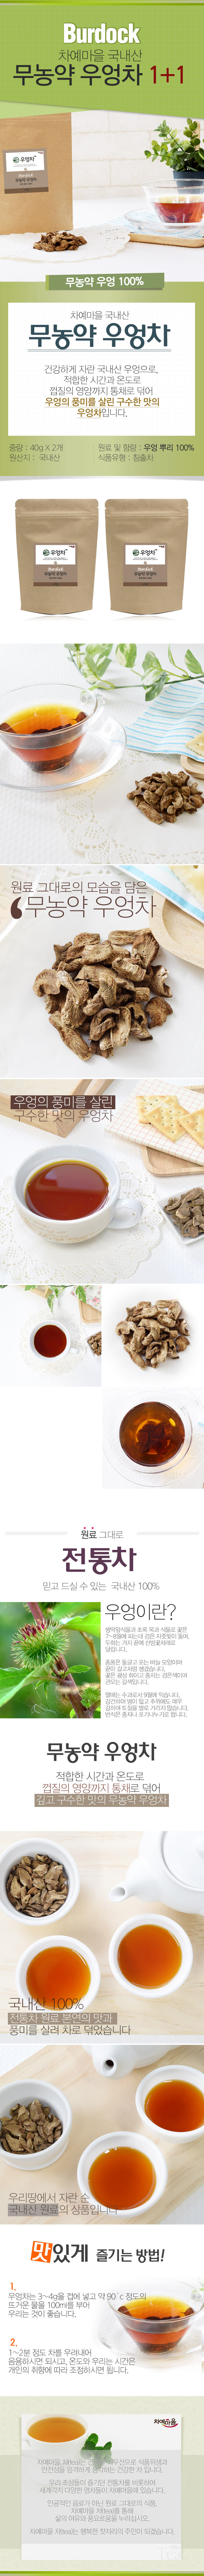 [ JiriMountainGureaMyeong ] [ChayeTown]Korean Organic Burdock Tea 40g 1+1개